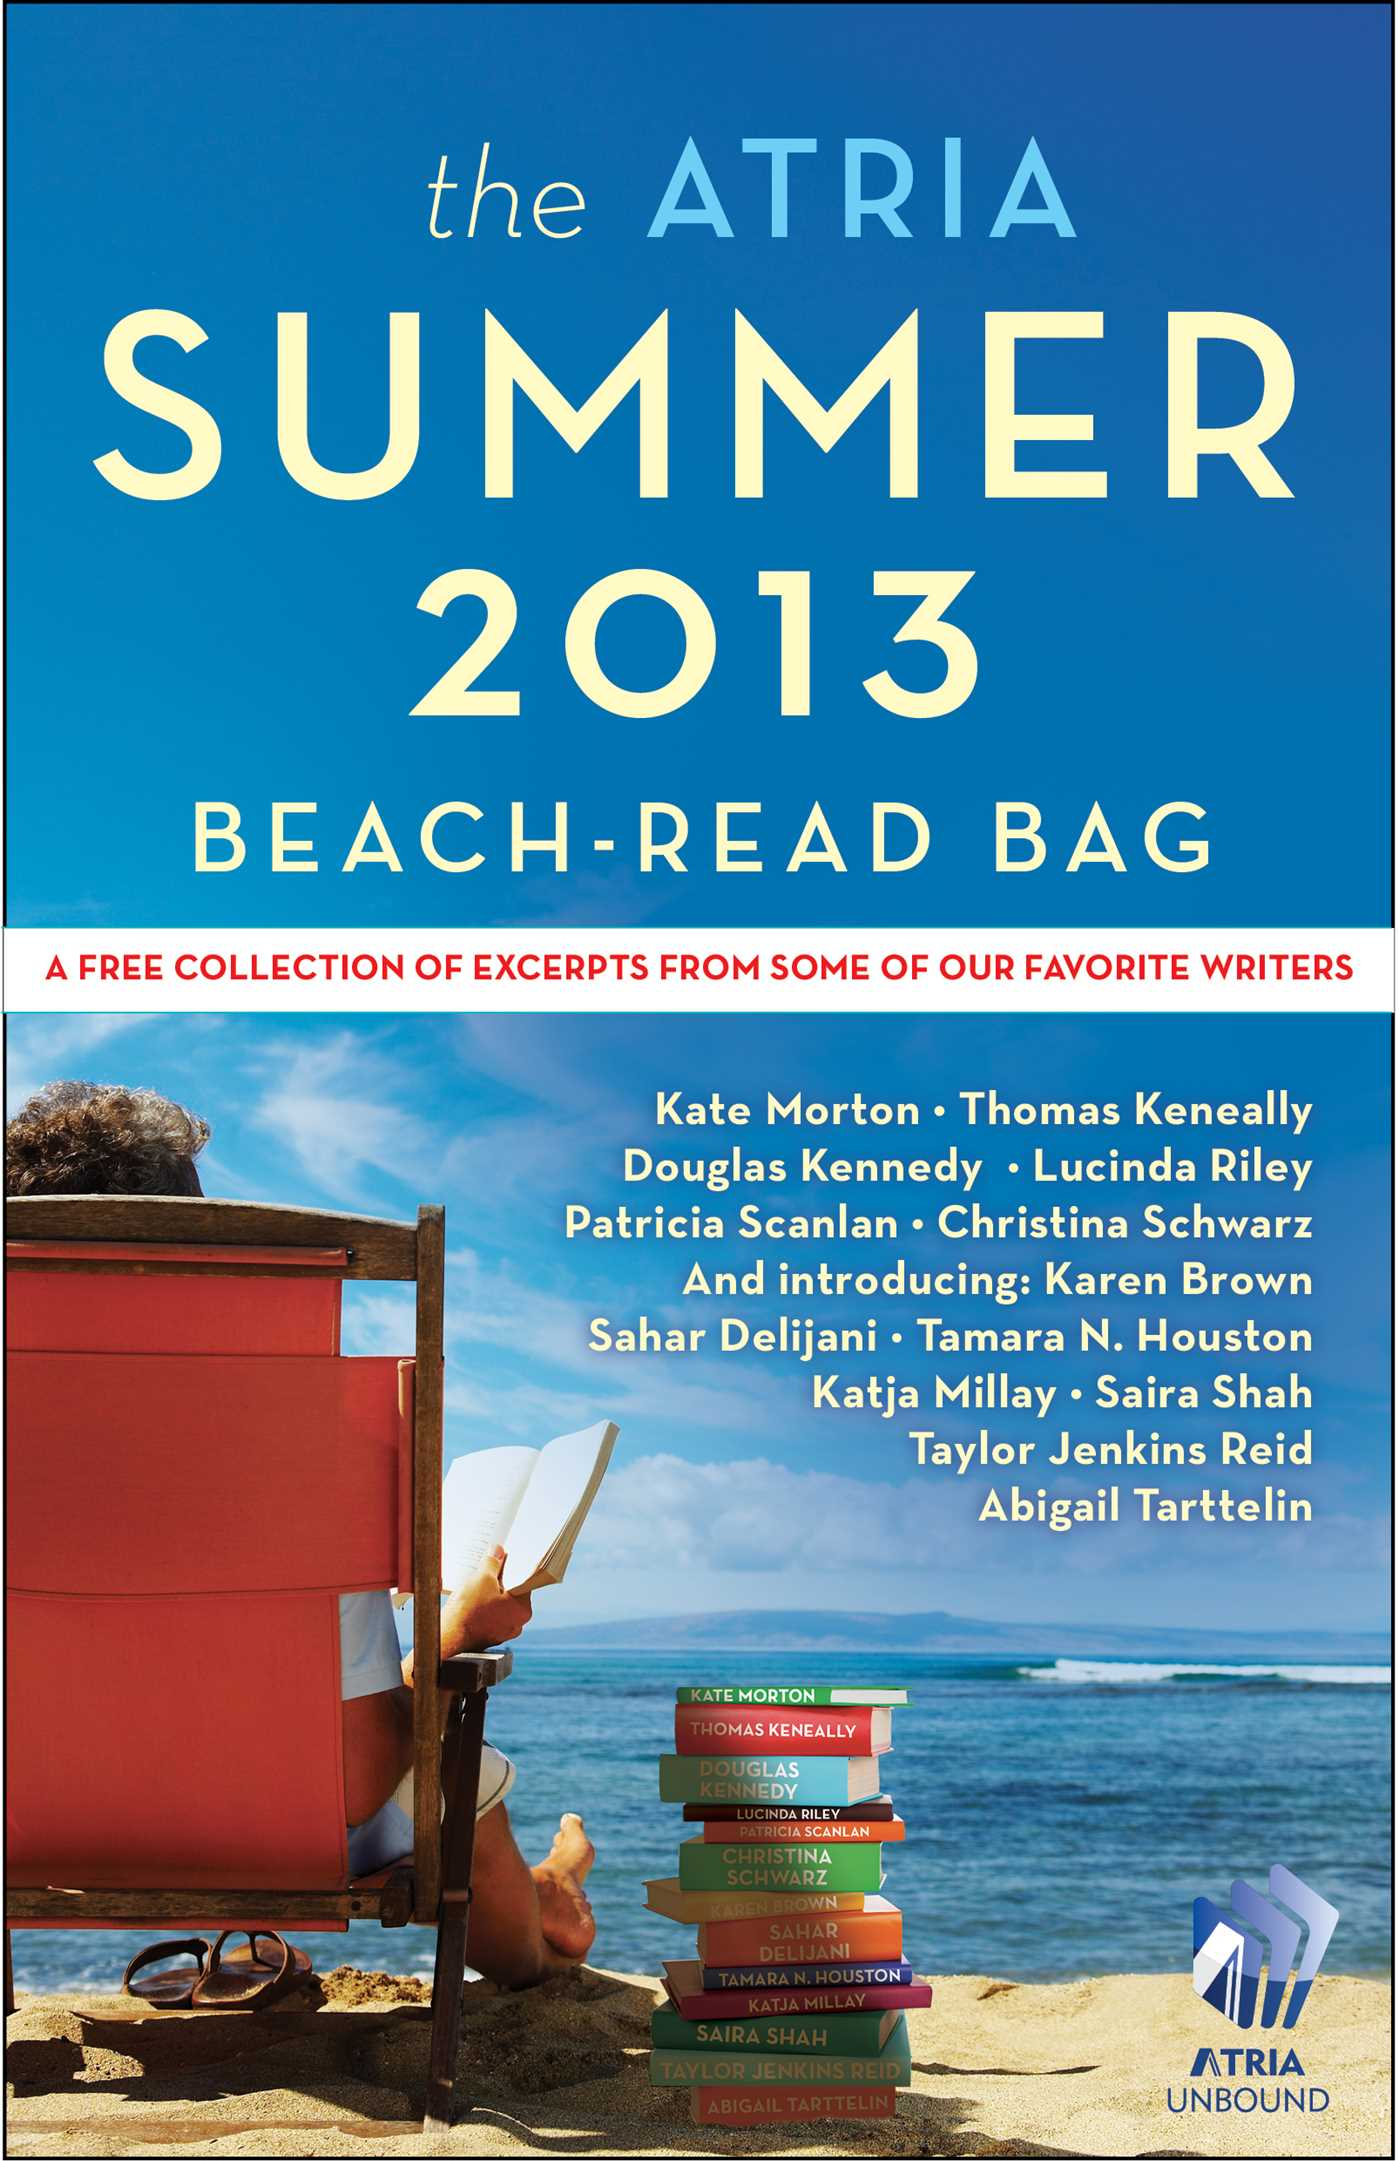 The-atria-summer-2013-beach-read-bag-9781476735177_hr